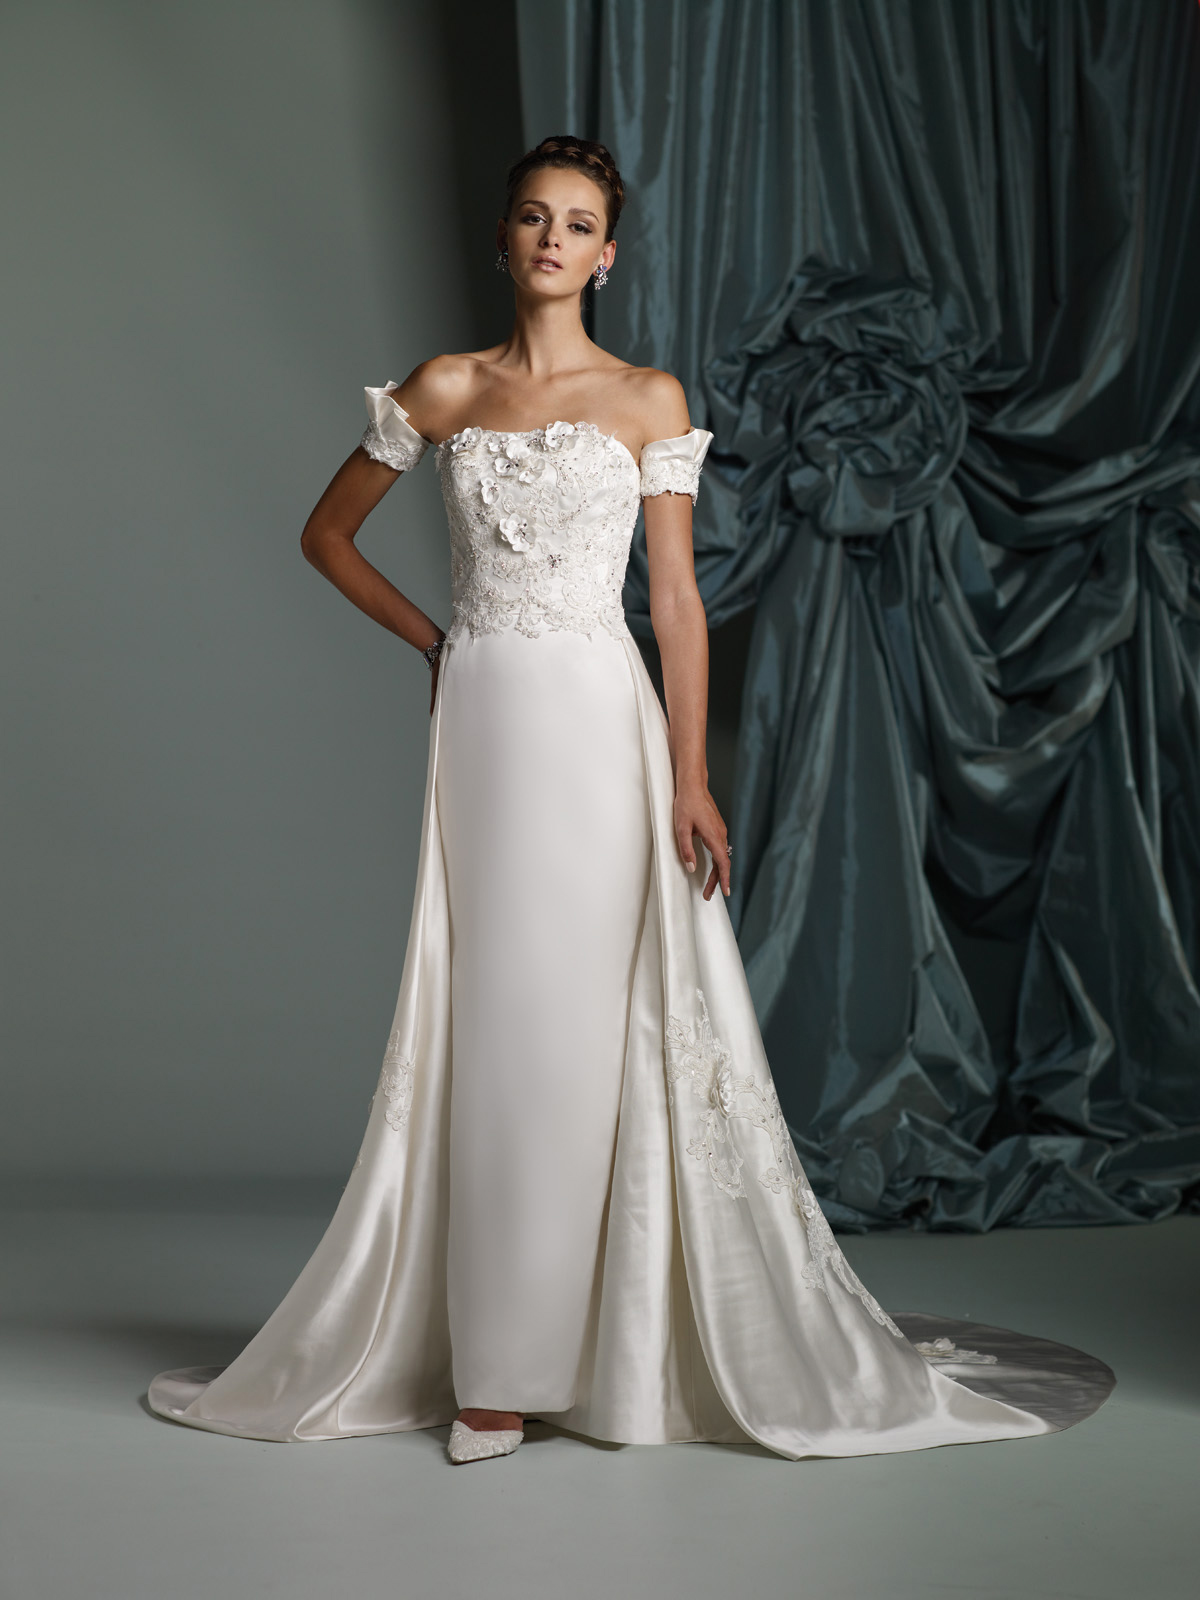 James clifford spring summer 2012 bridal collection the for Summer wedding dresses with sleeves